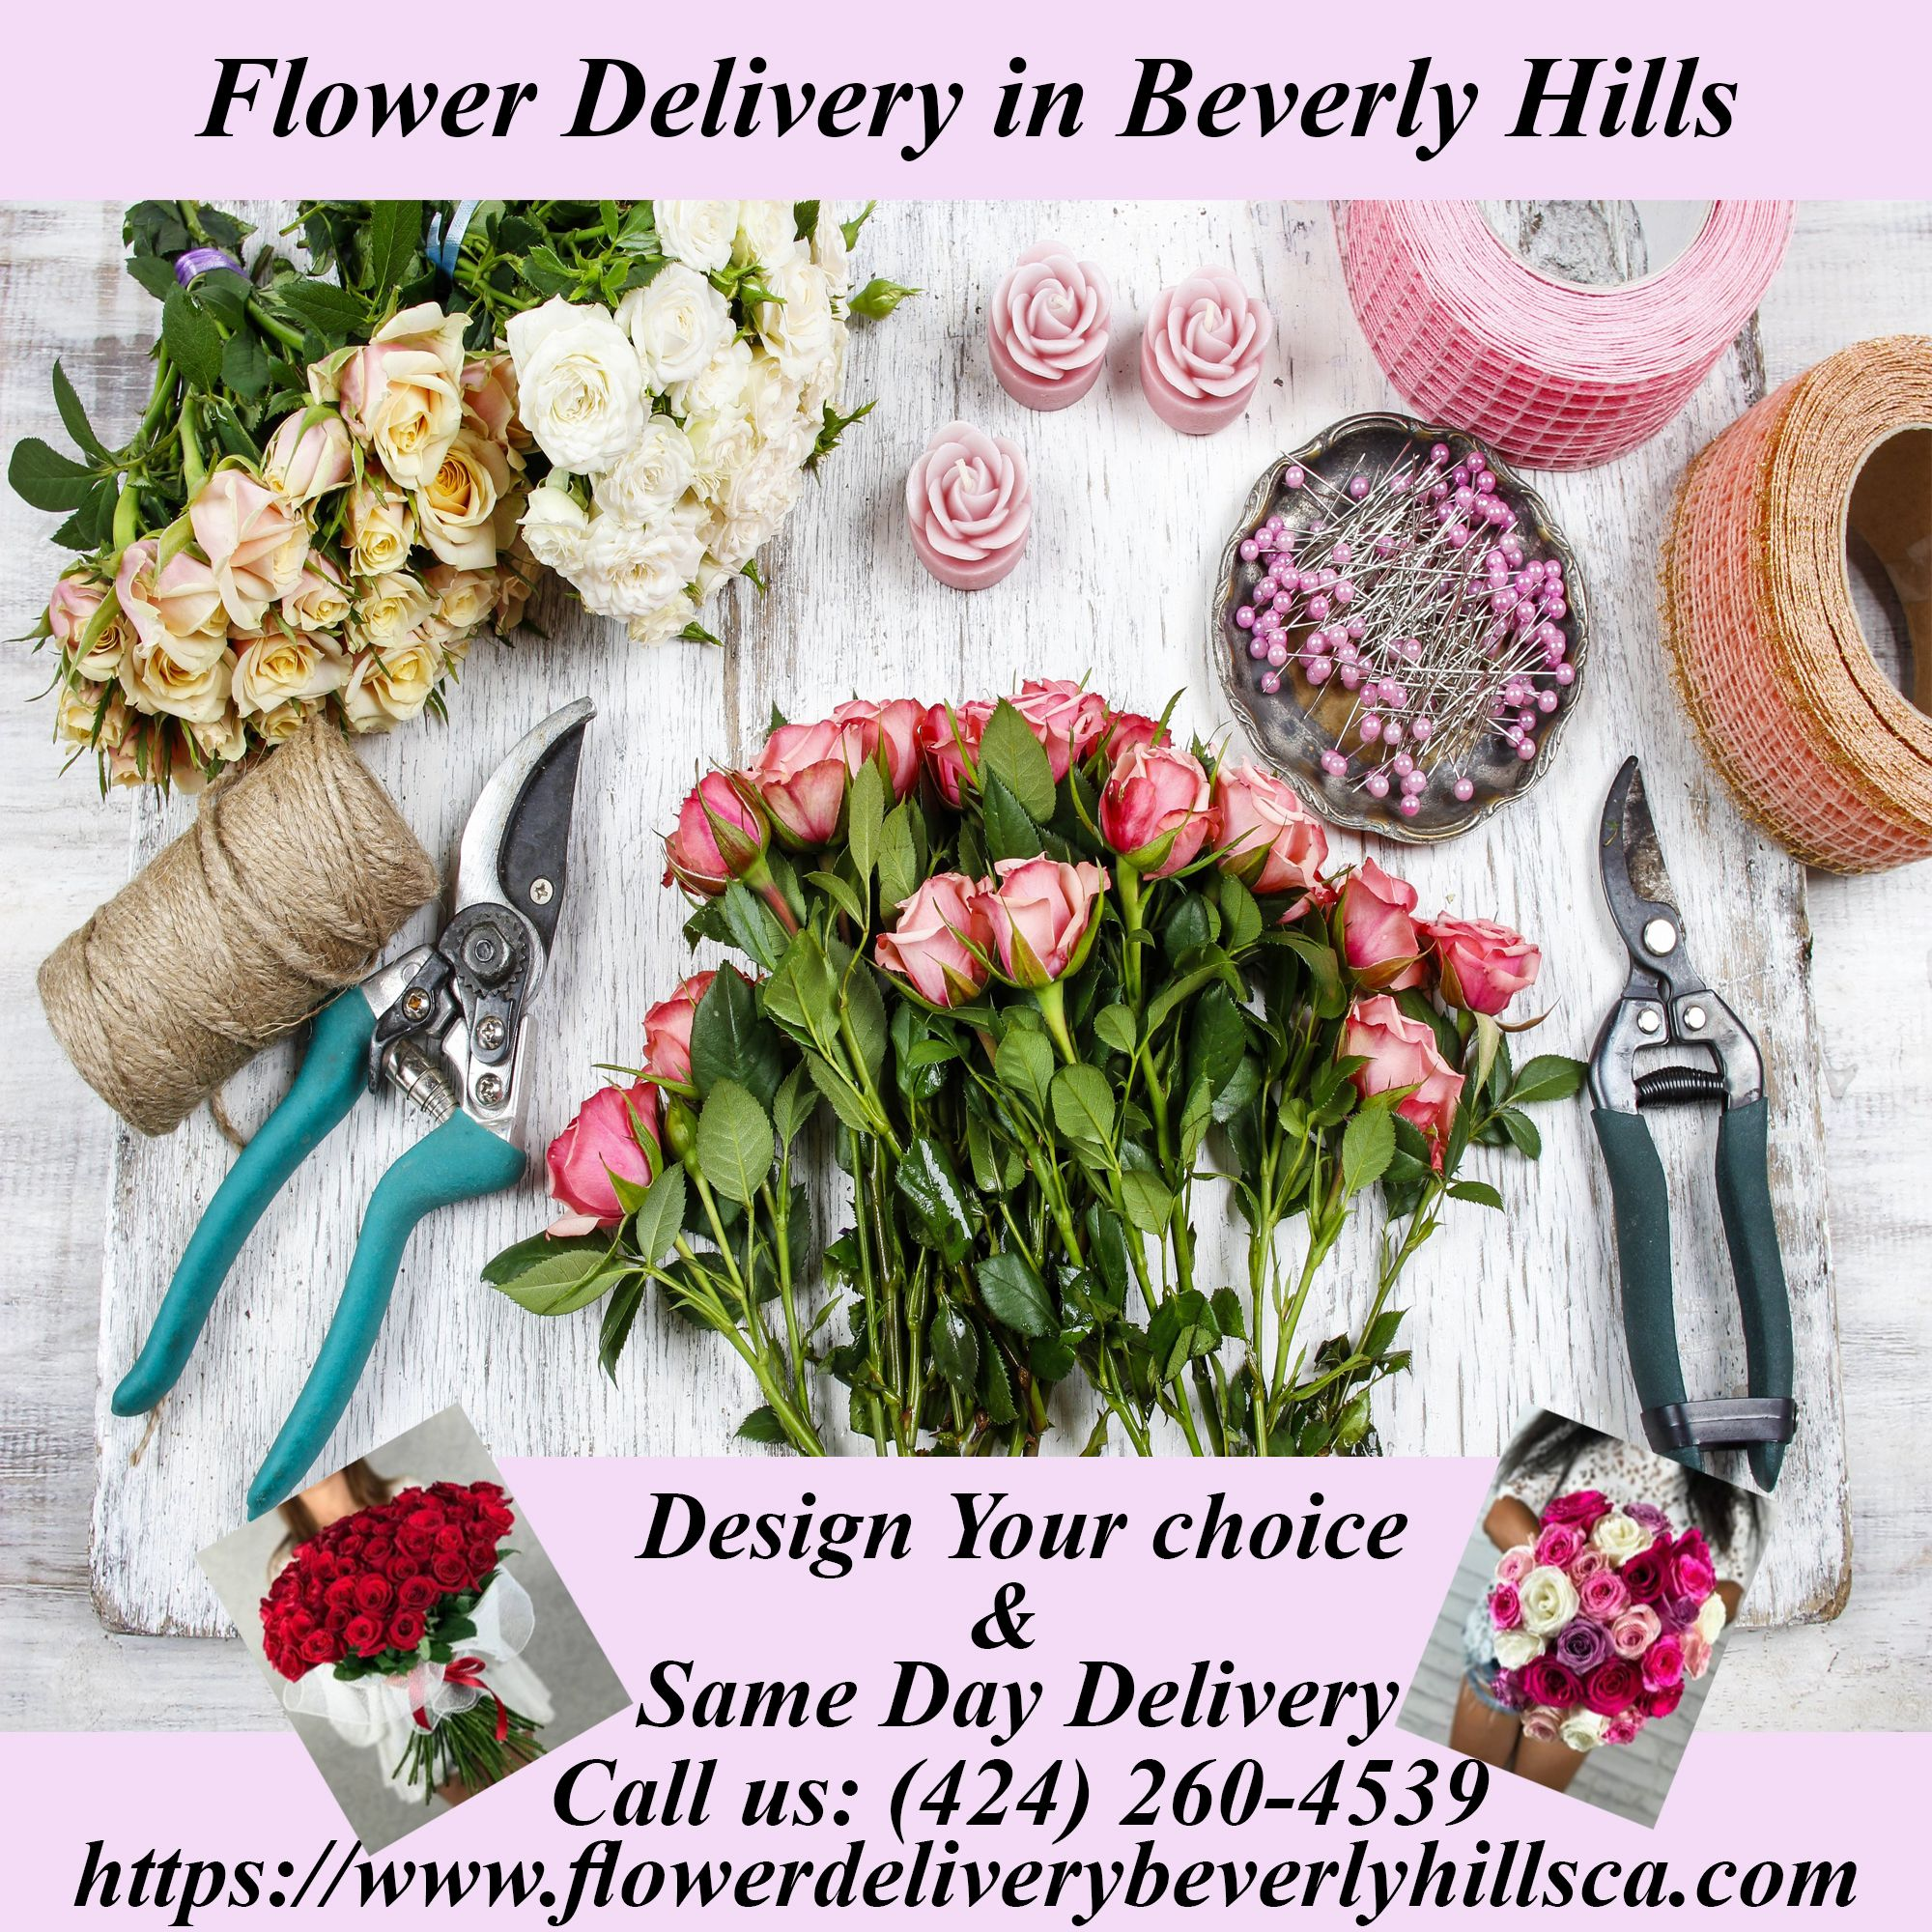 Flower Delivery Beverly Hills Ca Area Gives Best Prices Range For An